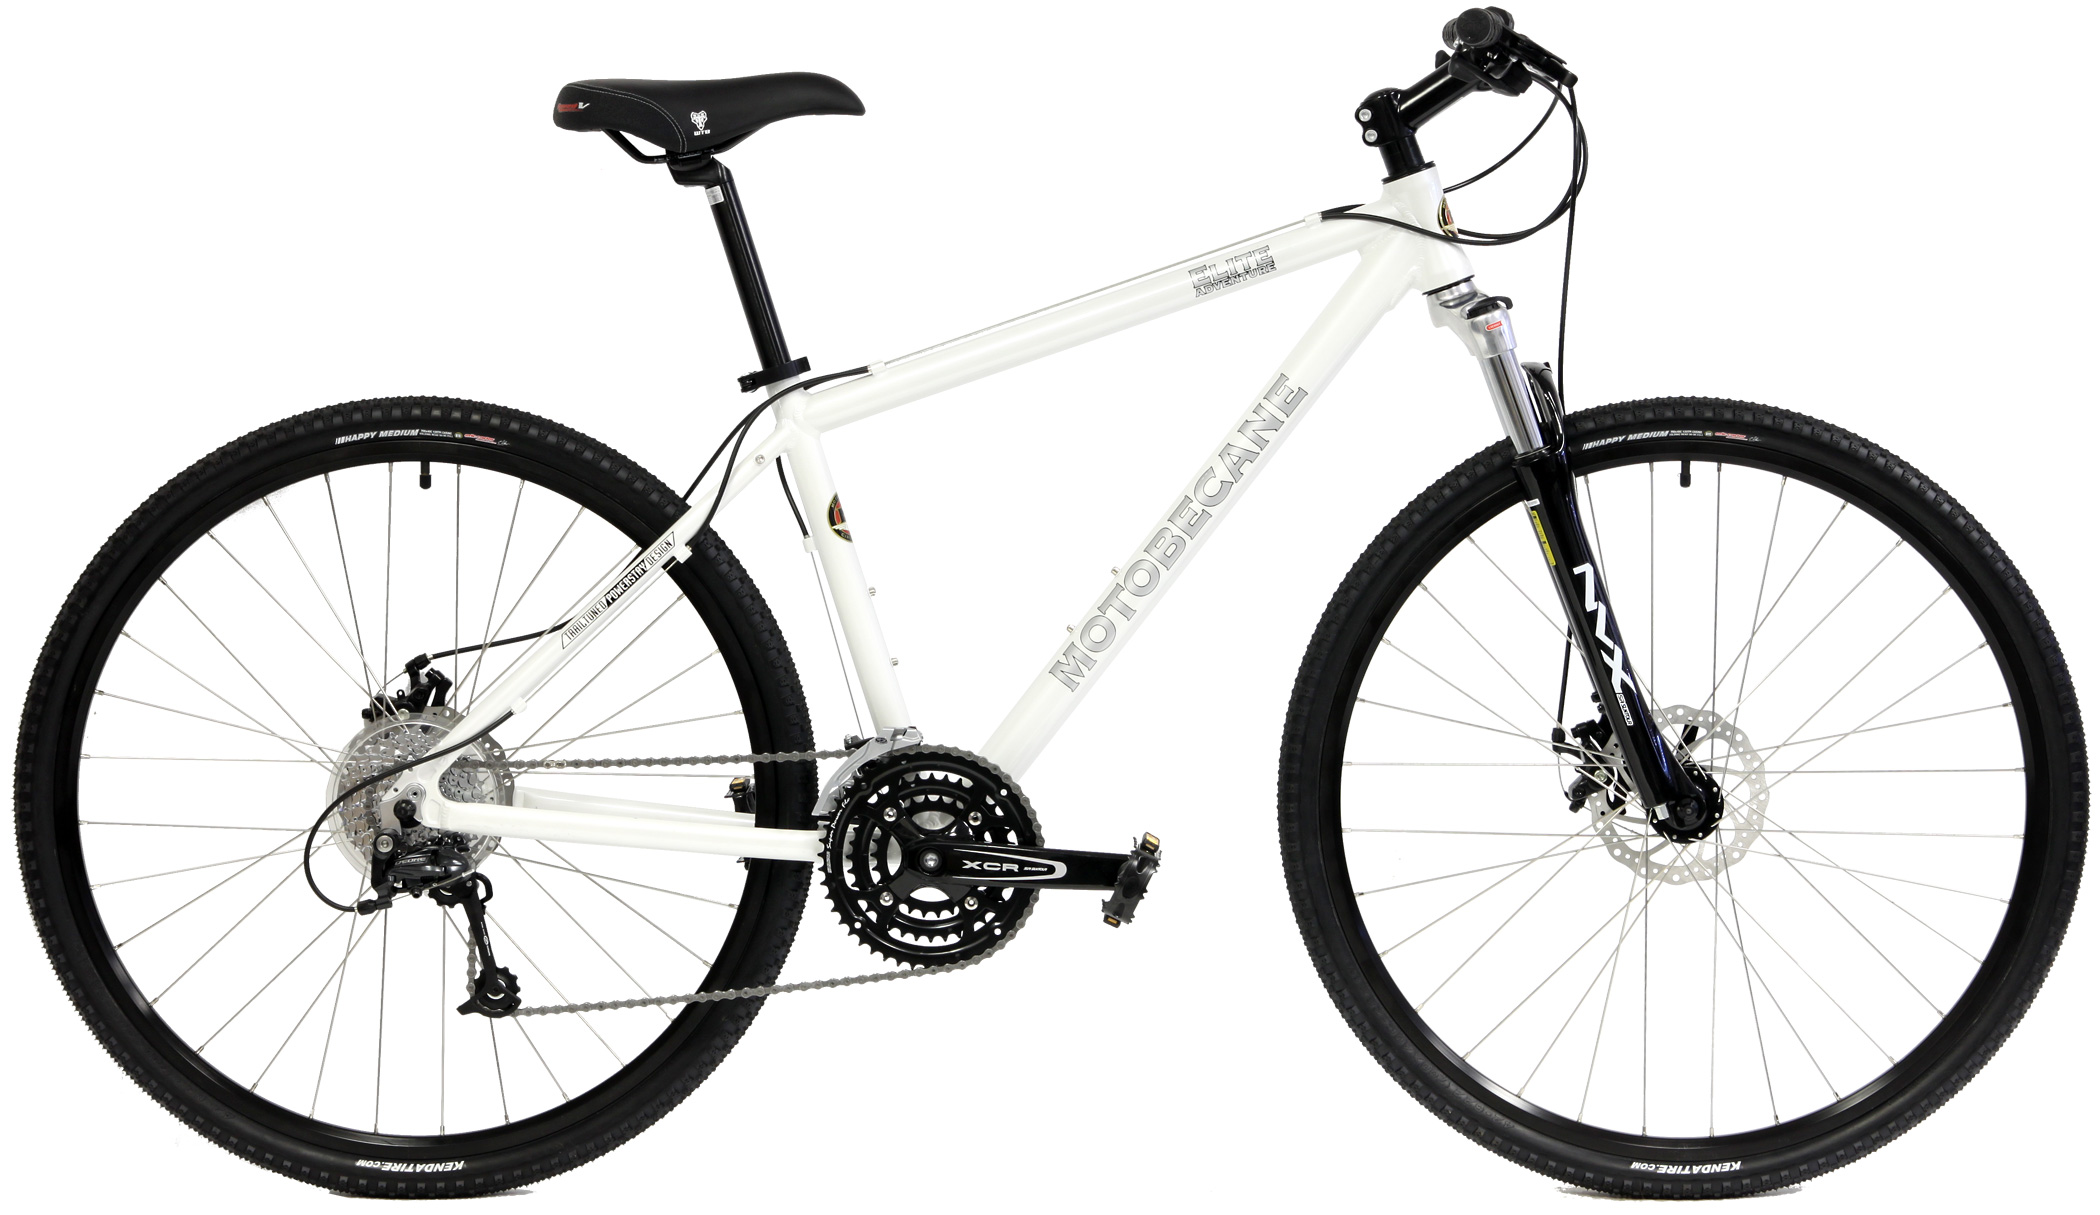 ELITE ADVENTURE - 27sp SHIMANO ALUMINUM ADVENTURE HYBRID